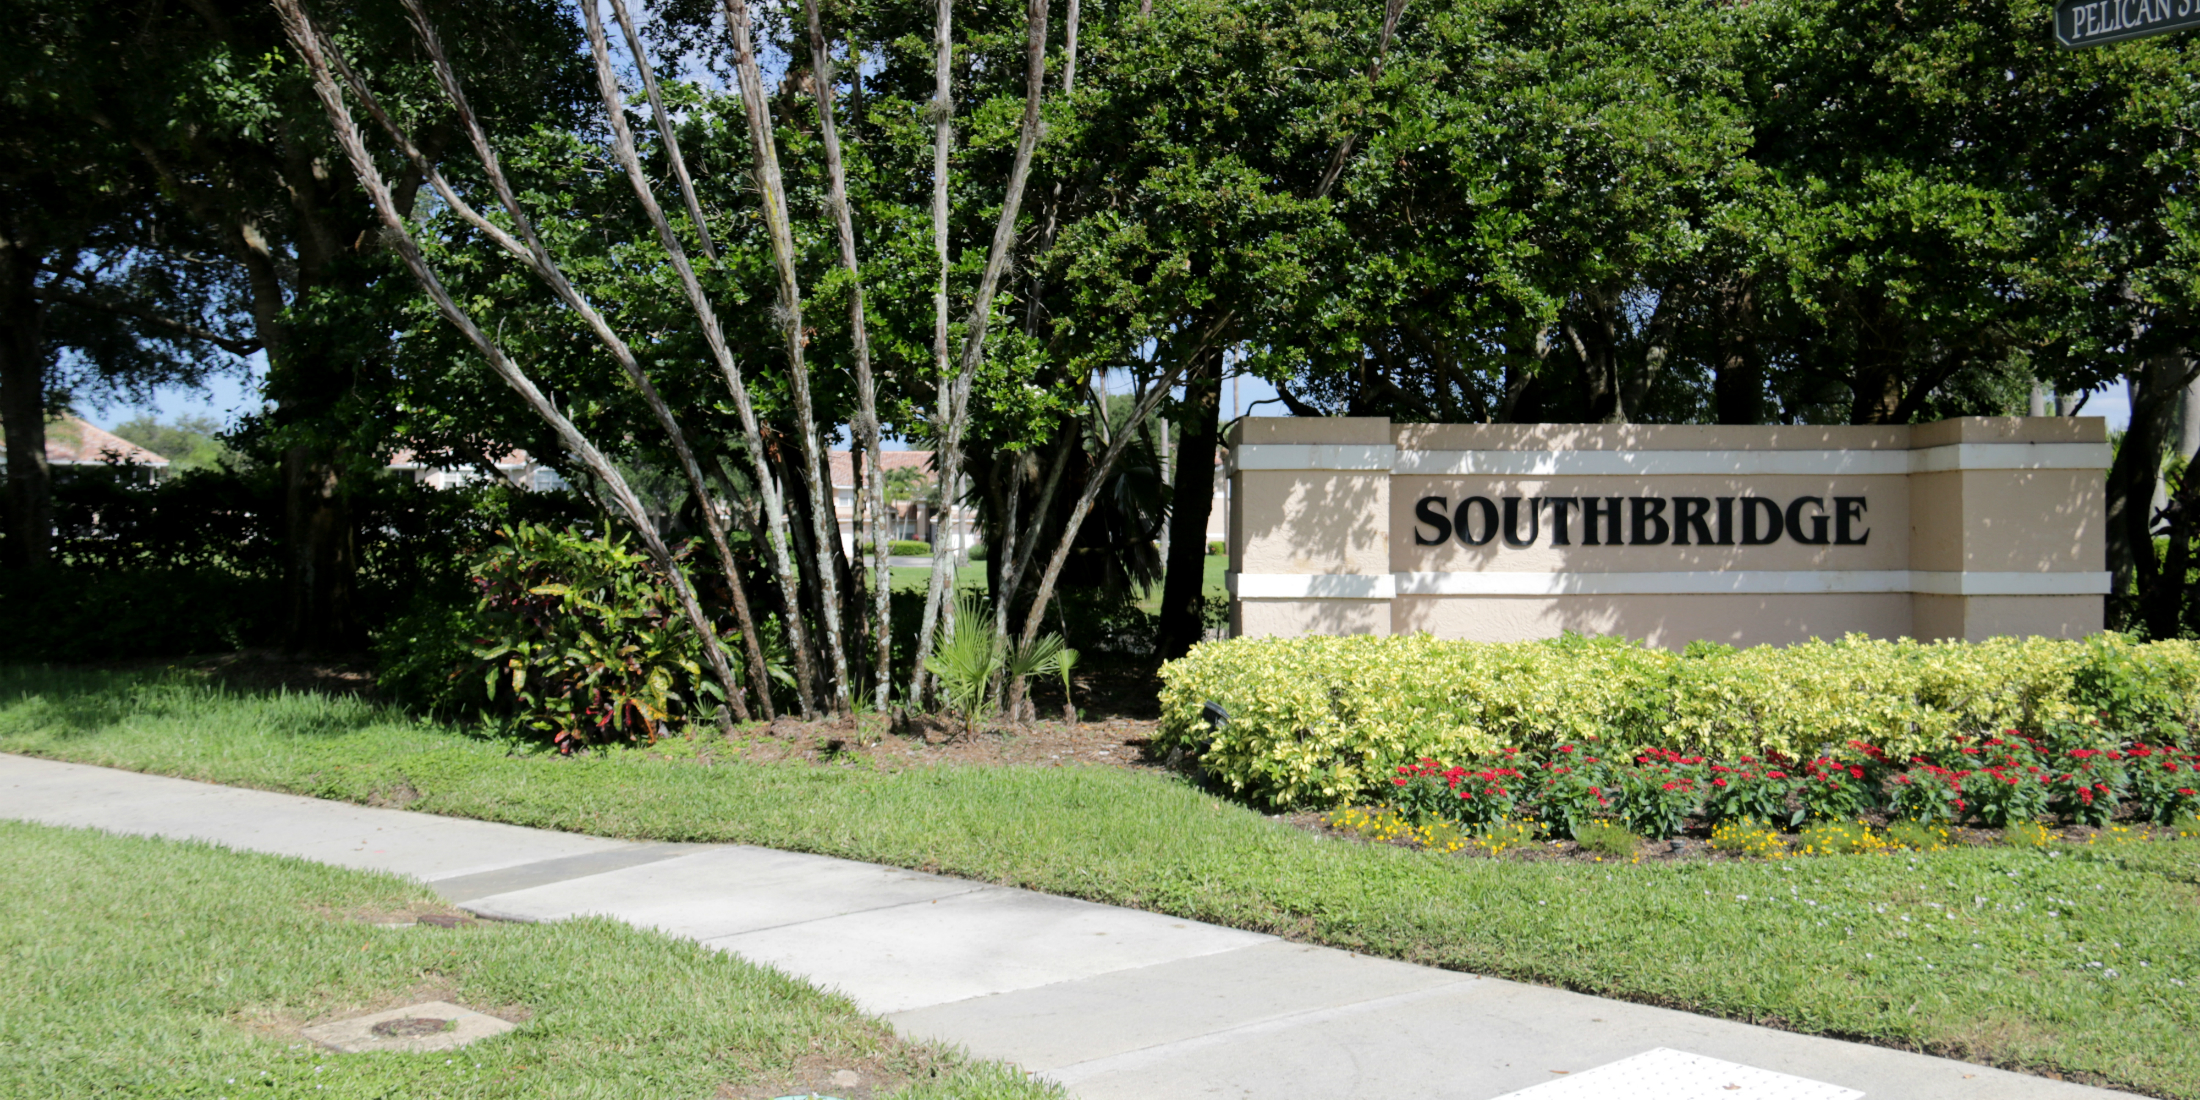 Condos For Sale In Southbridge At Pelican Landing In